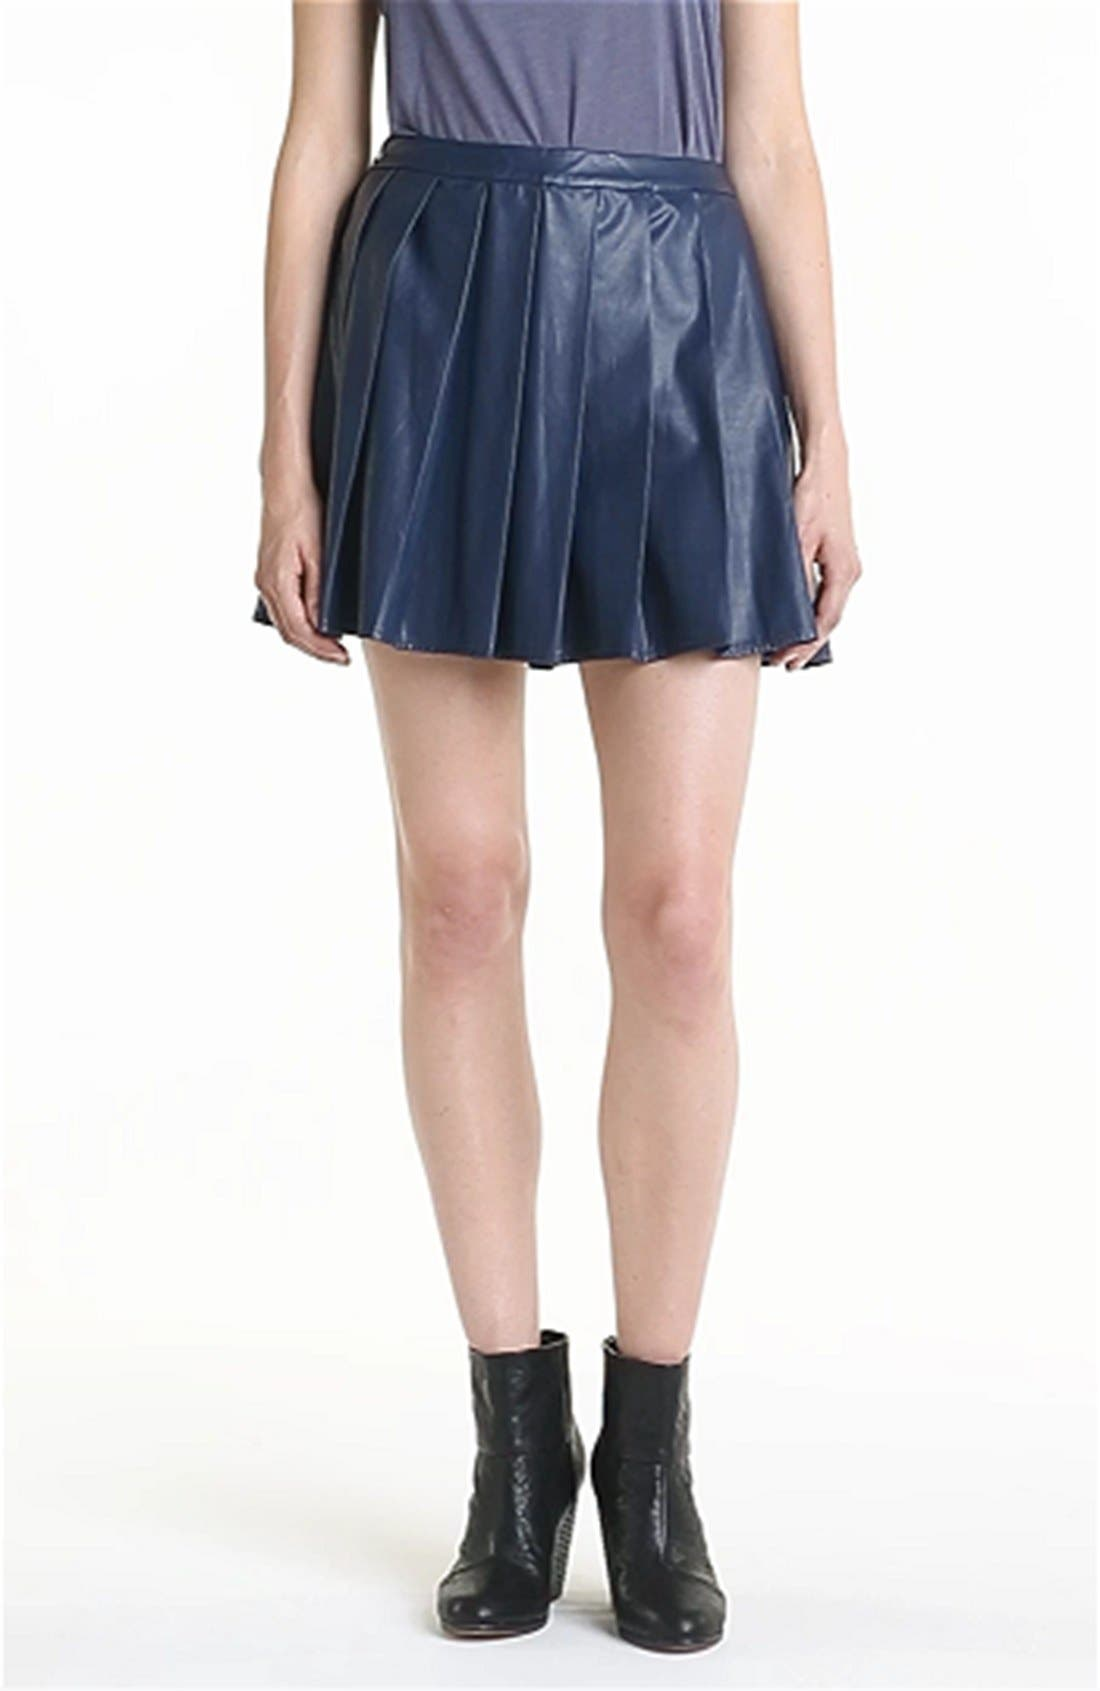 ASTR THE LABEL, ASTR Pleated Faux Leather Skirt, Alternate thumbnail 3, color, 422